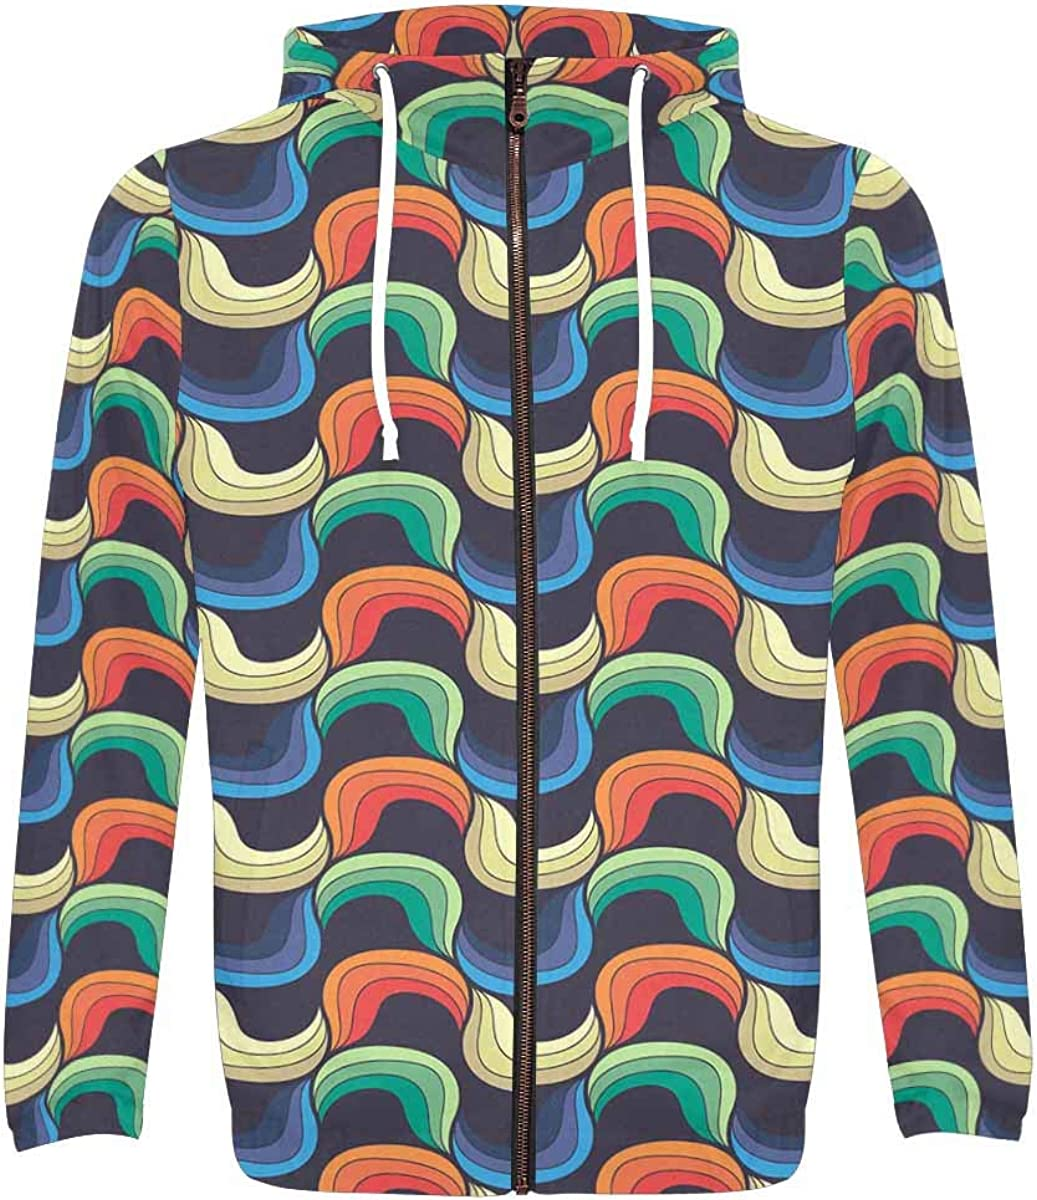 InterestPrint Men's Polyester Long Baltimore Mall Al sold out. Sleeve Poc Zipper Hoodie with